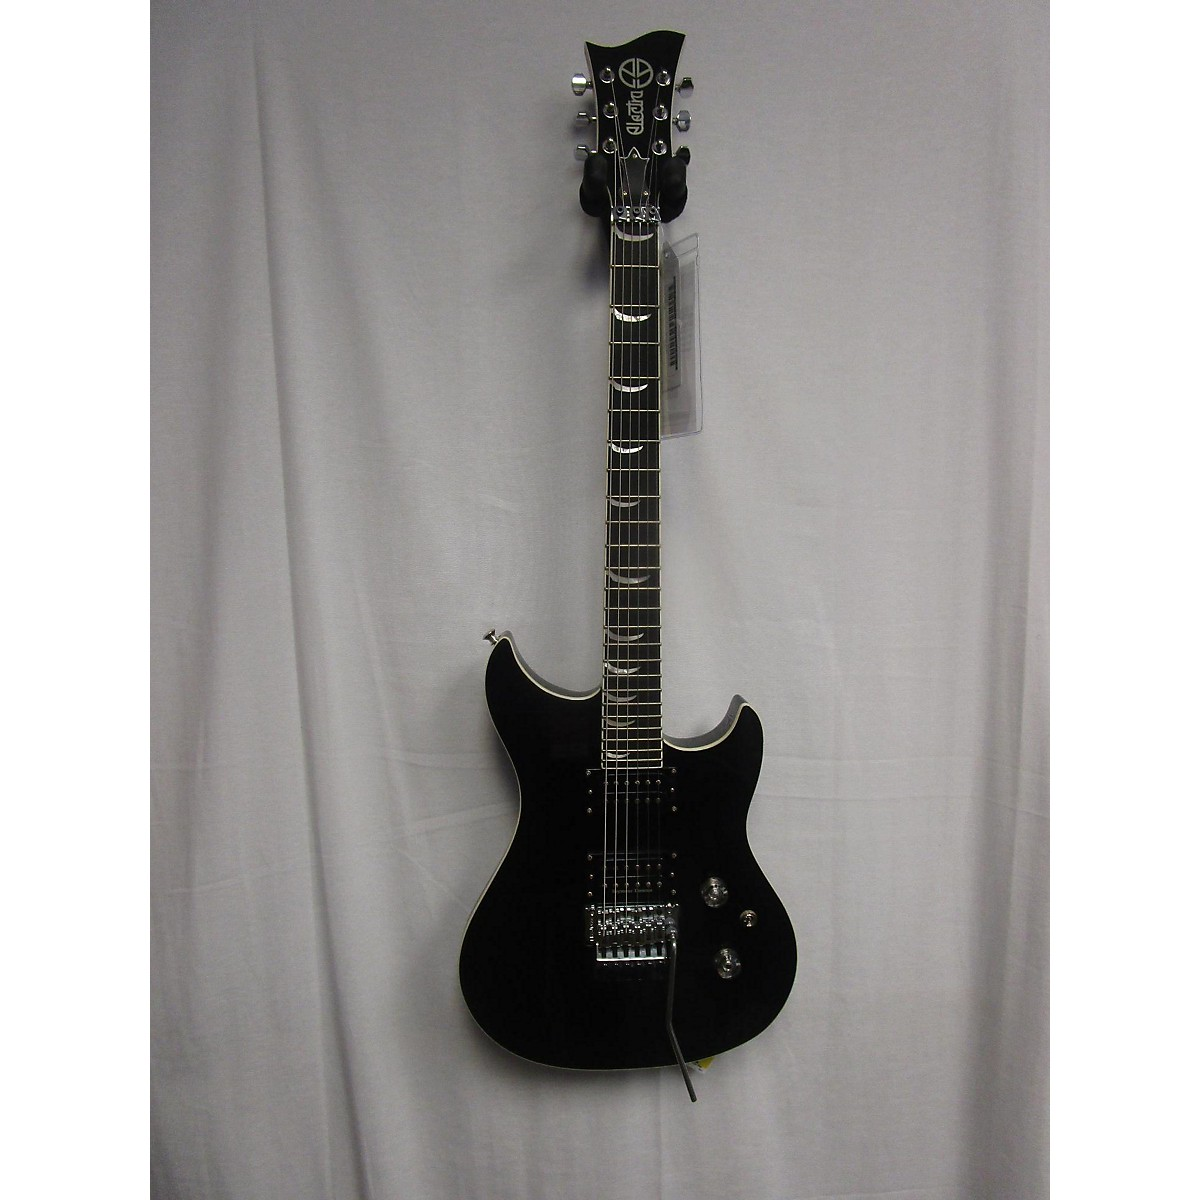 Electra Talon Solid Body Electric Guitar